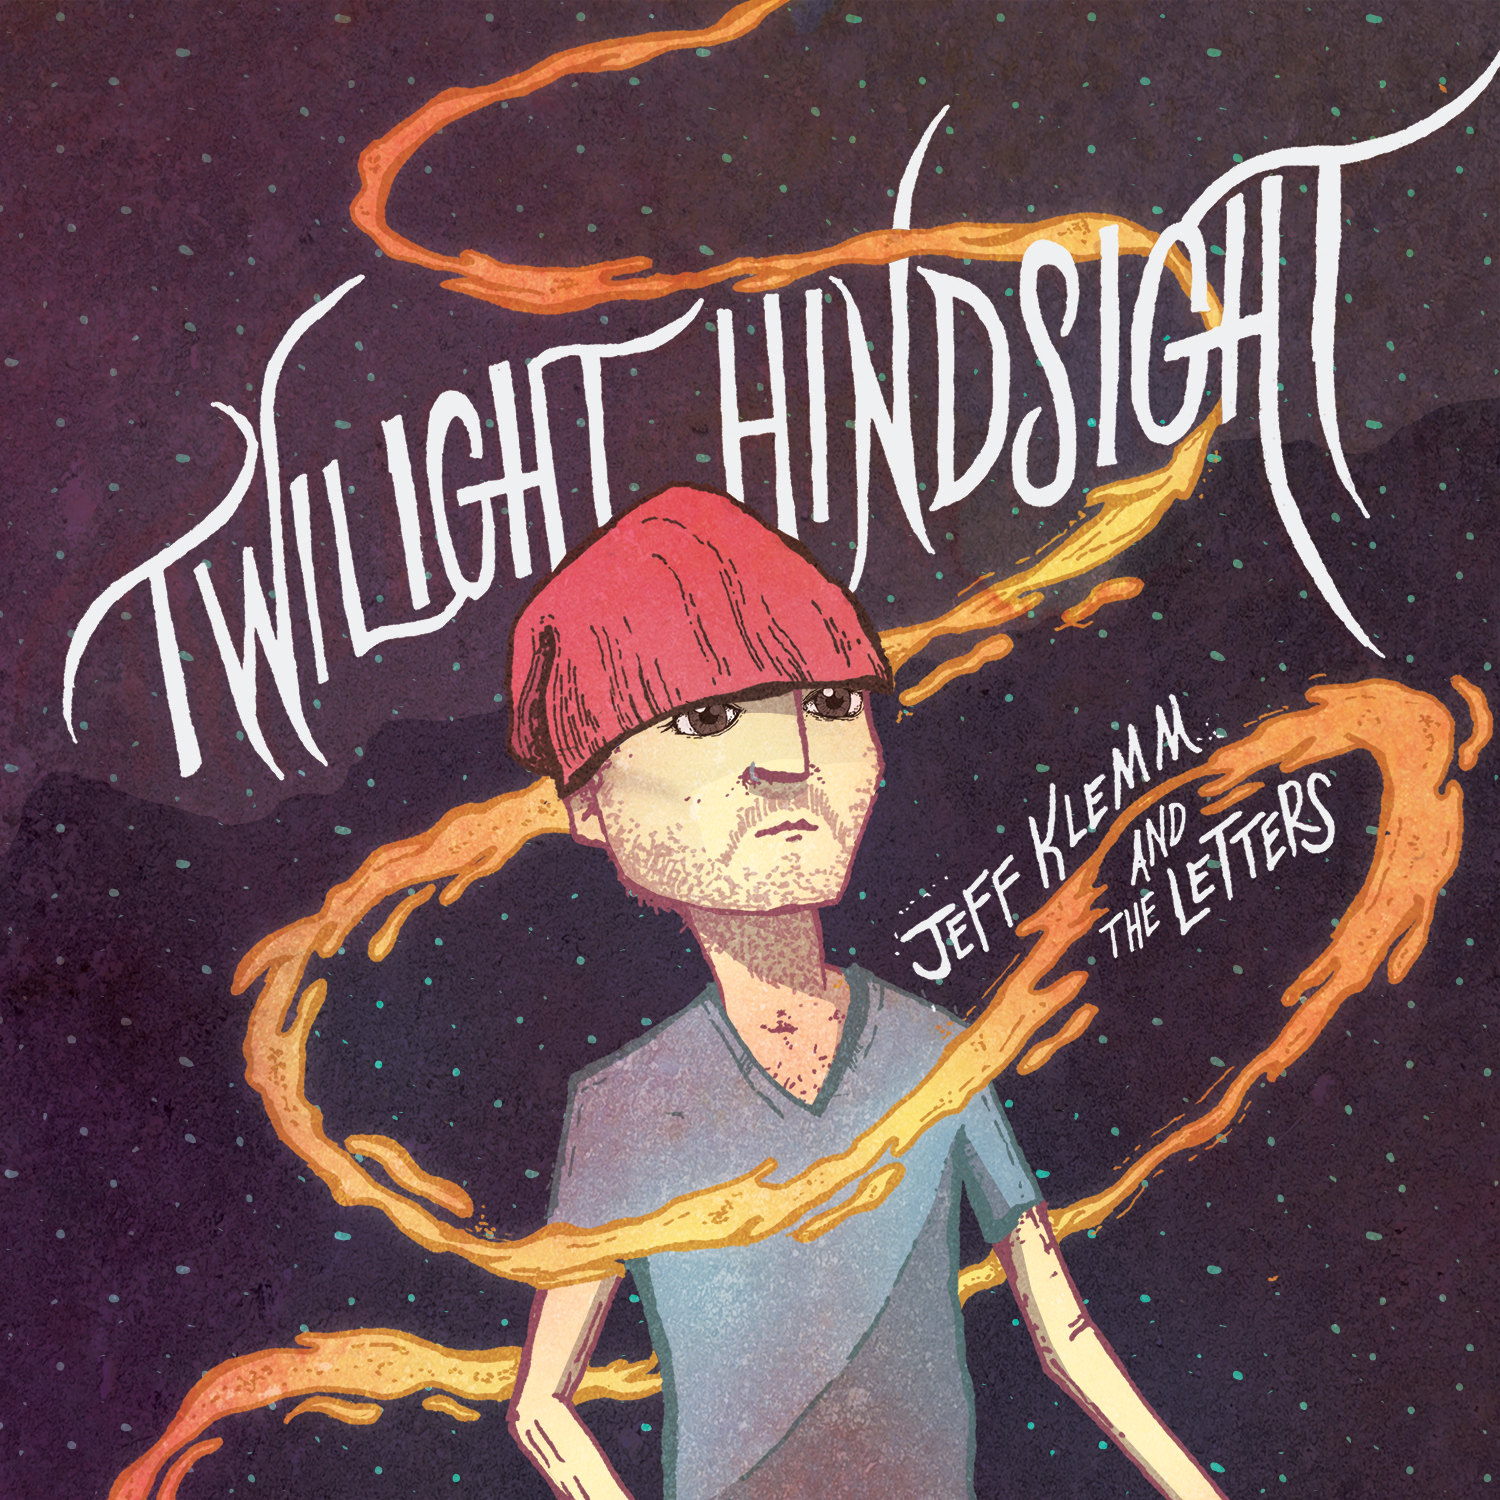 Twilight Hindsight